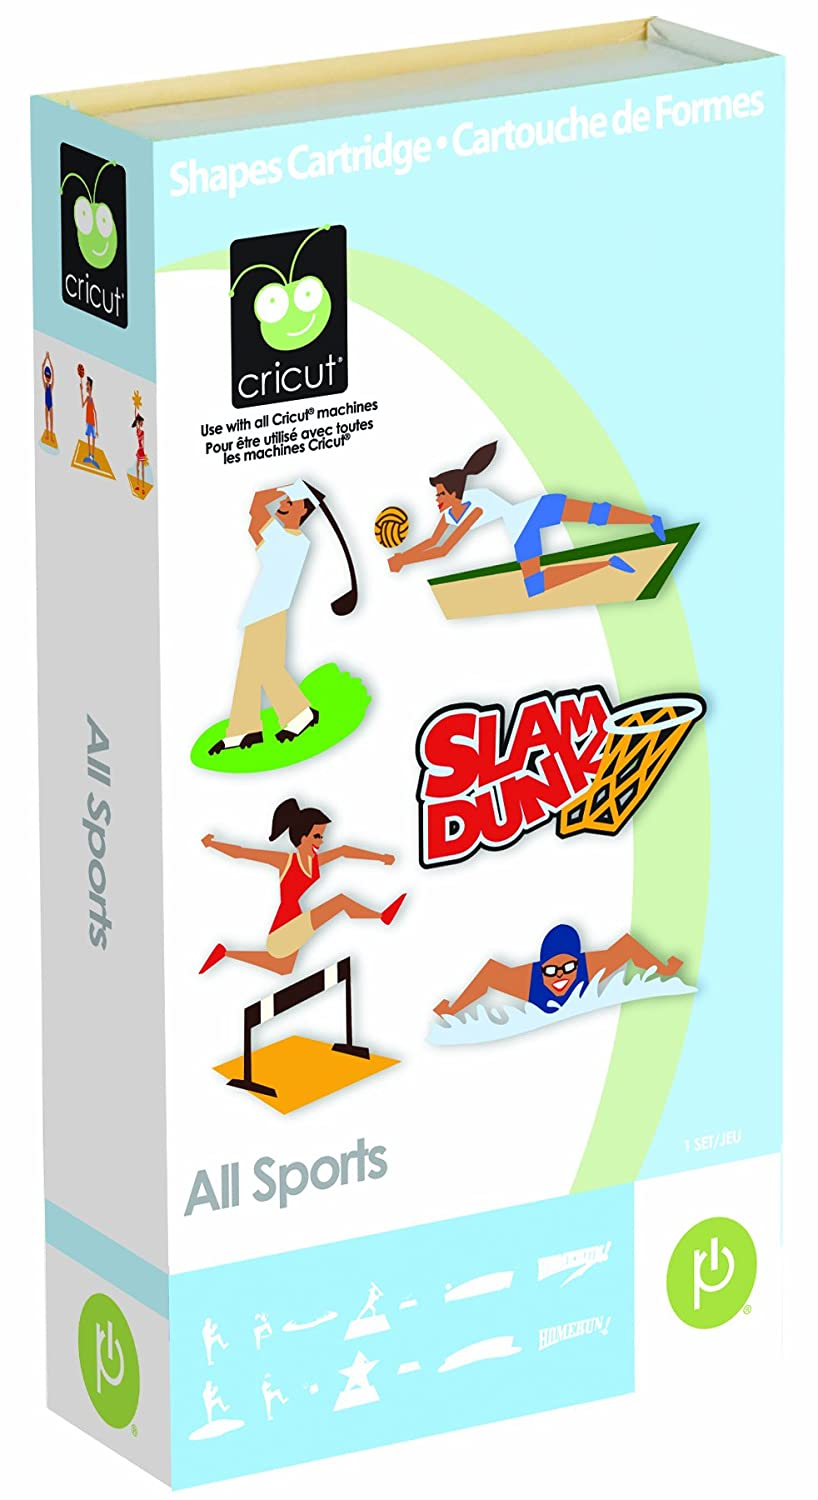 Cricut 2000932 All Sports Cartridge